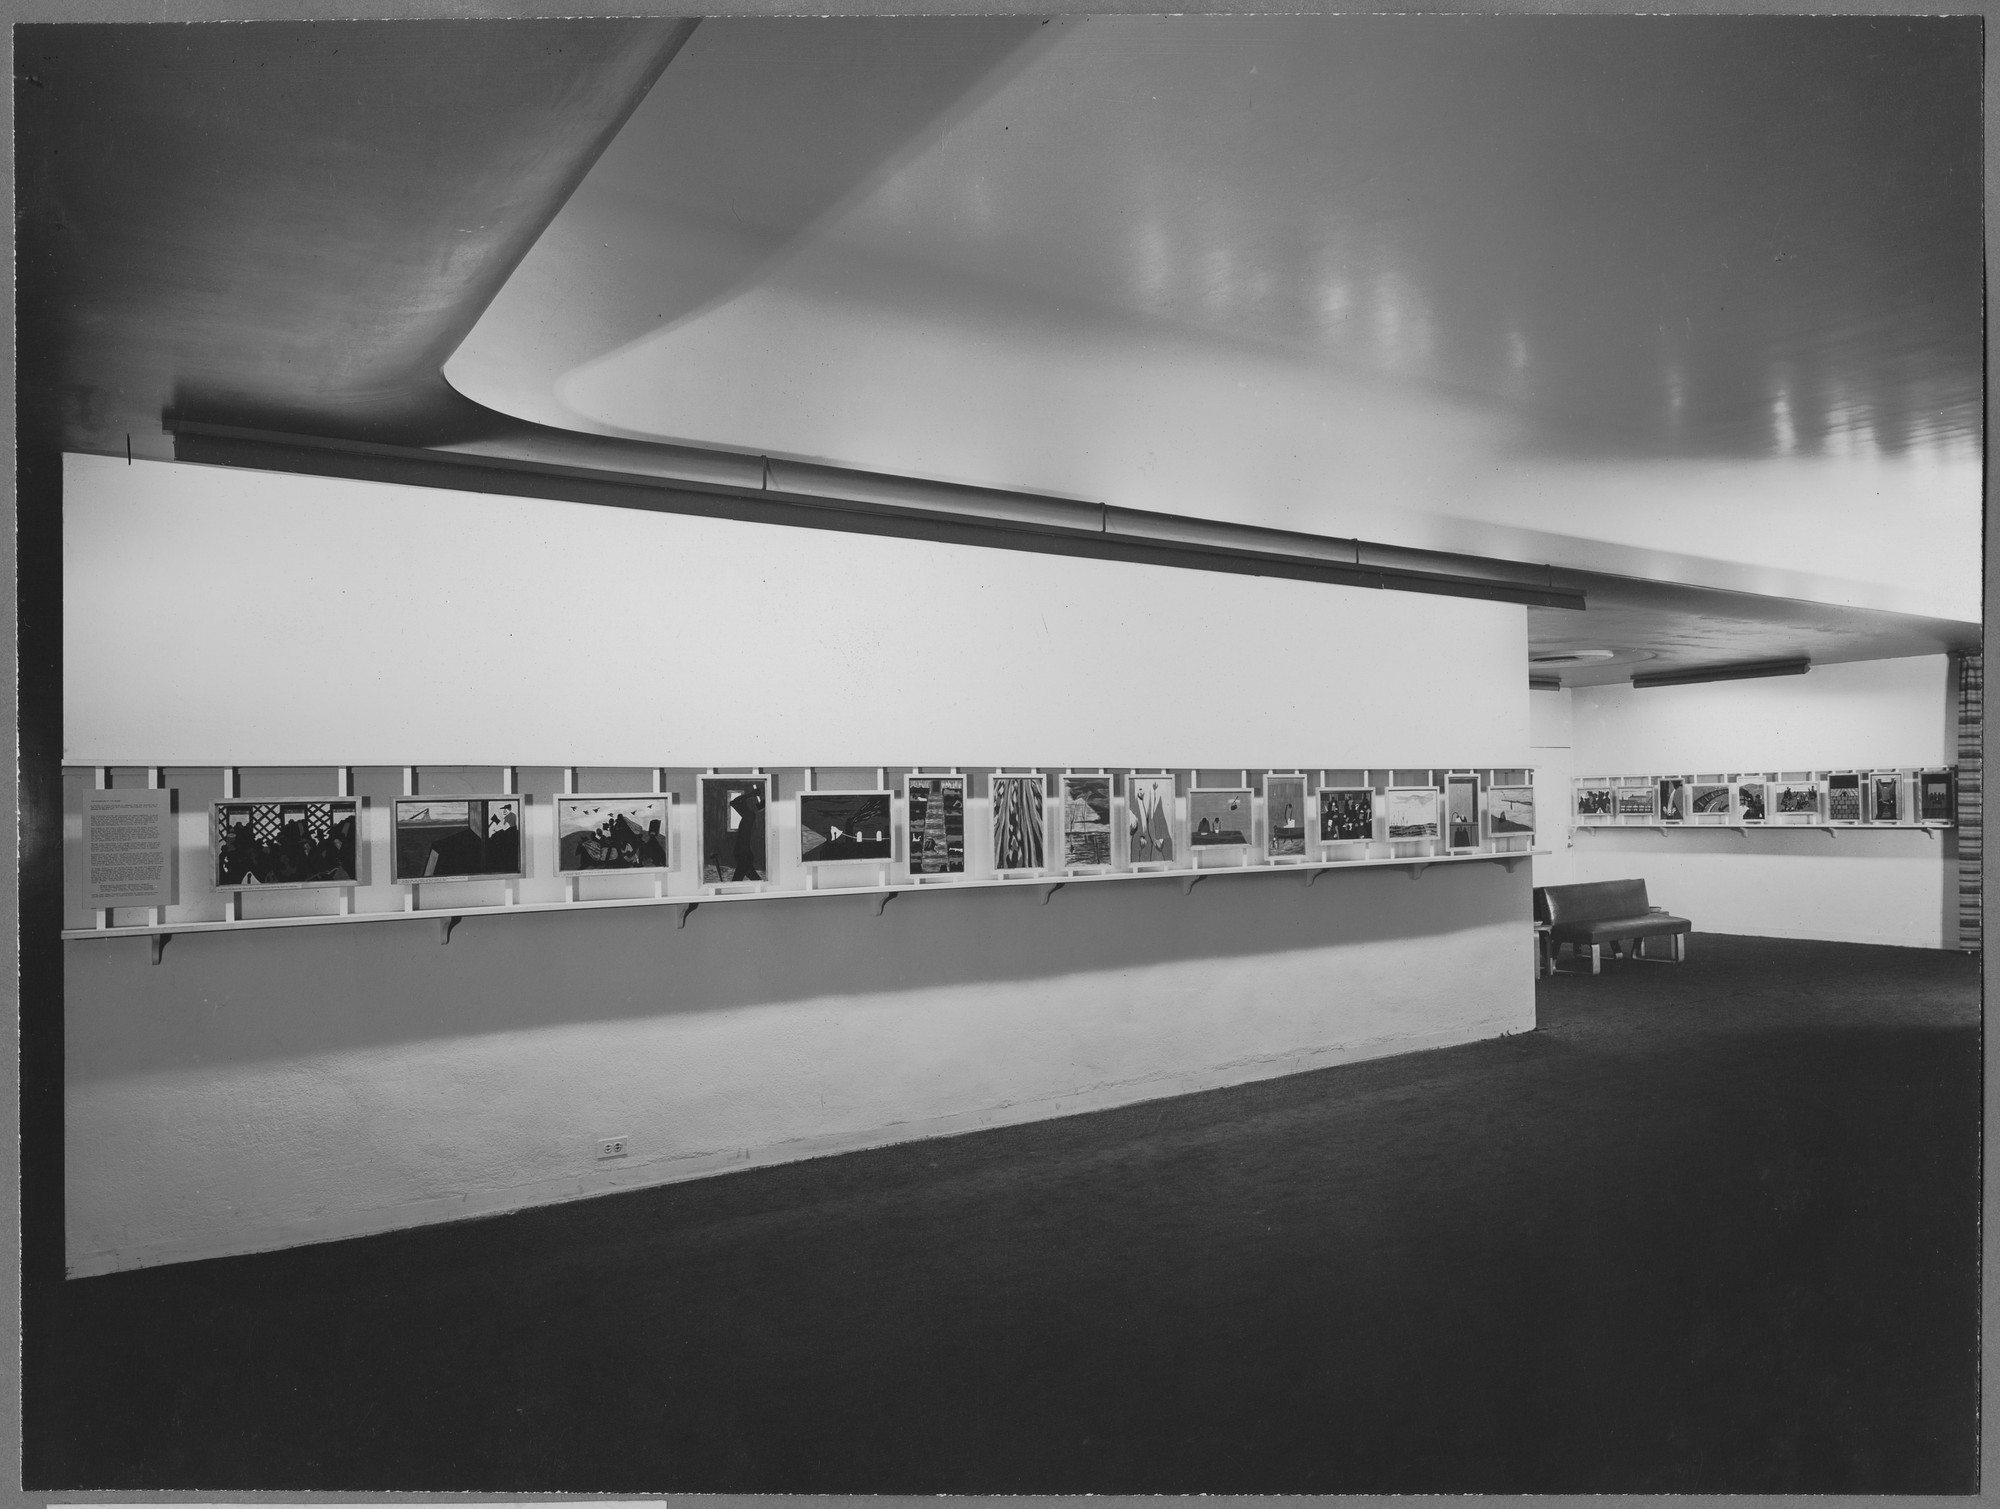 "Installation view of the exhibition,""Paintings by Jacob Lawrence."" October 10, 1944–November 5, 1944. Photographic Archive. The Museum of Modern Art Archives, New York. IN262.1. Photograph by Soichi Sunami."